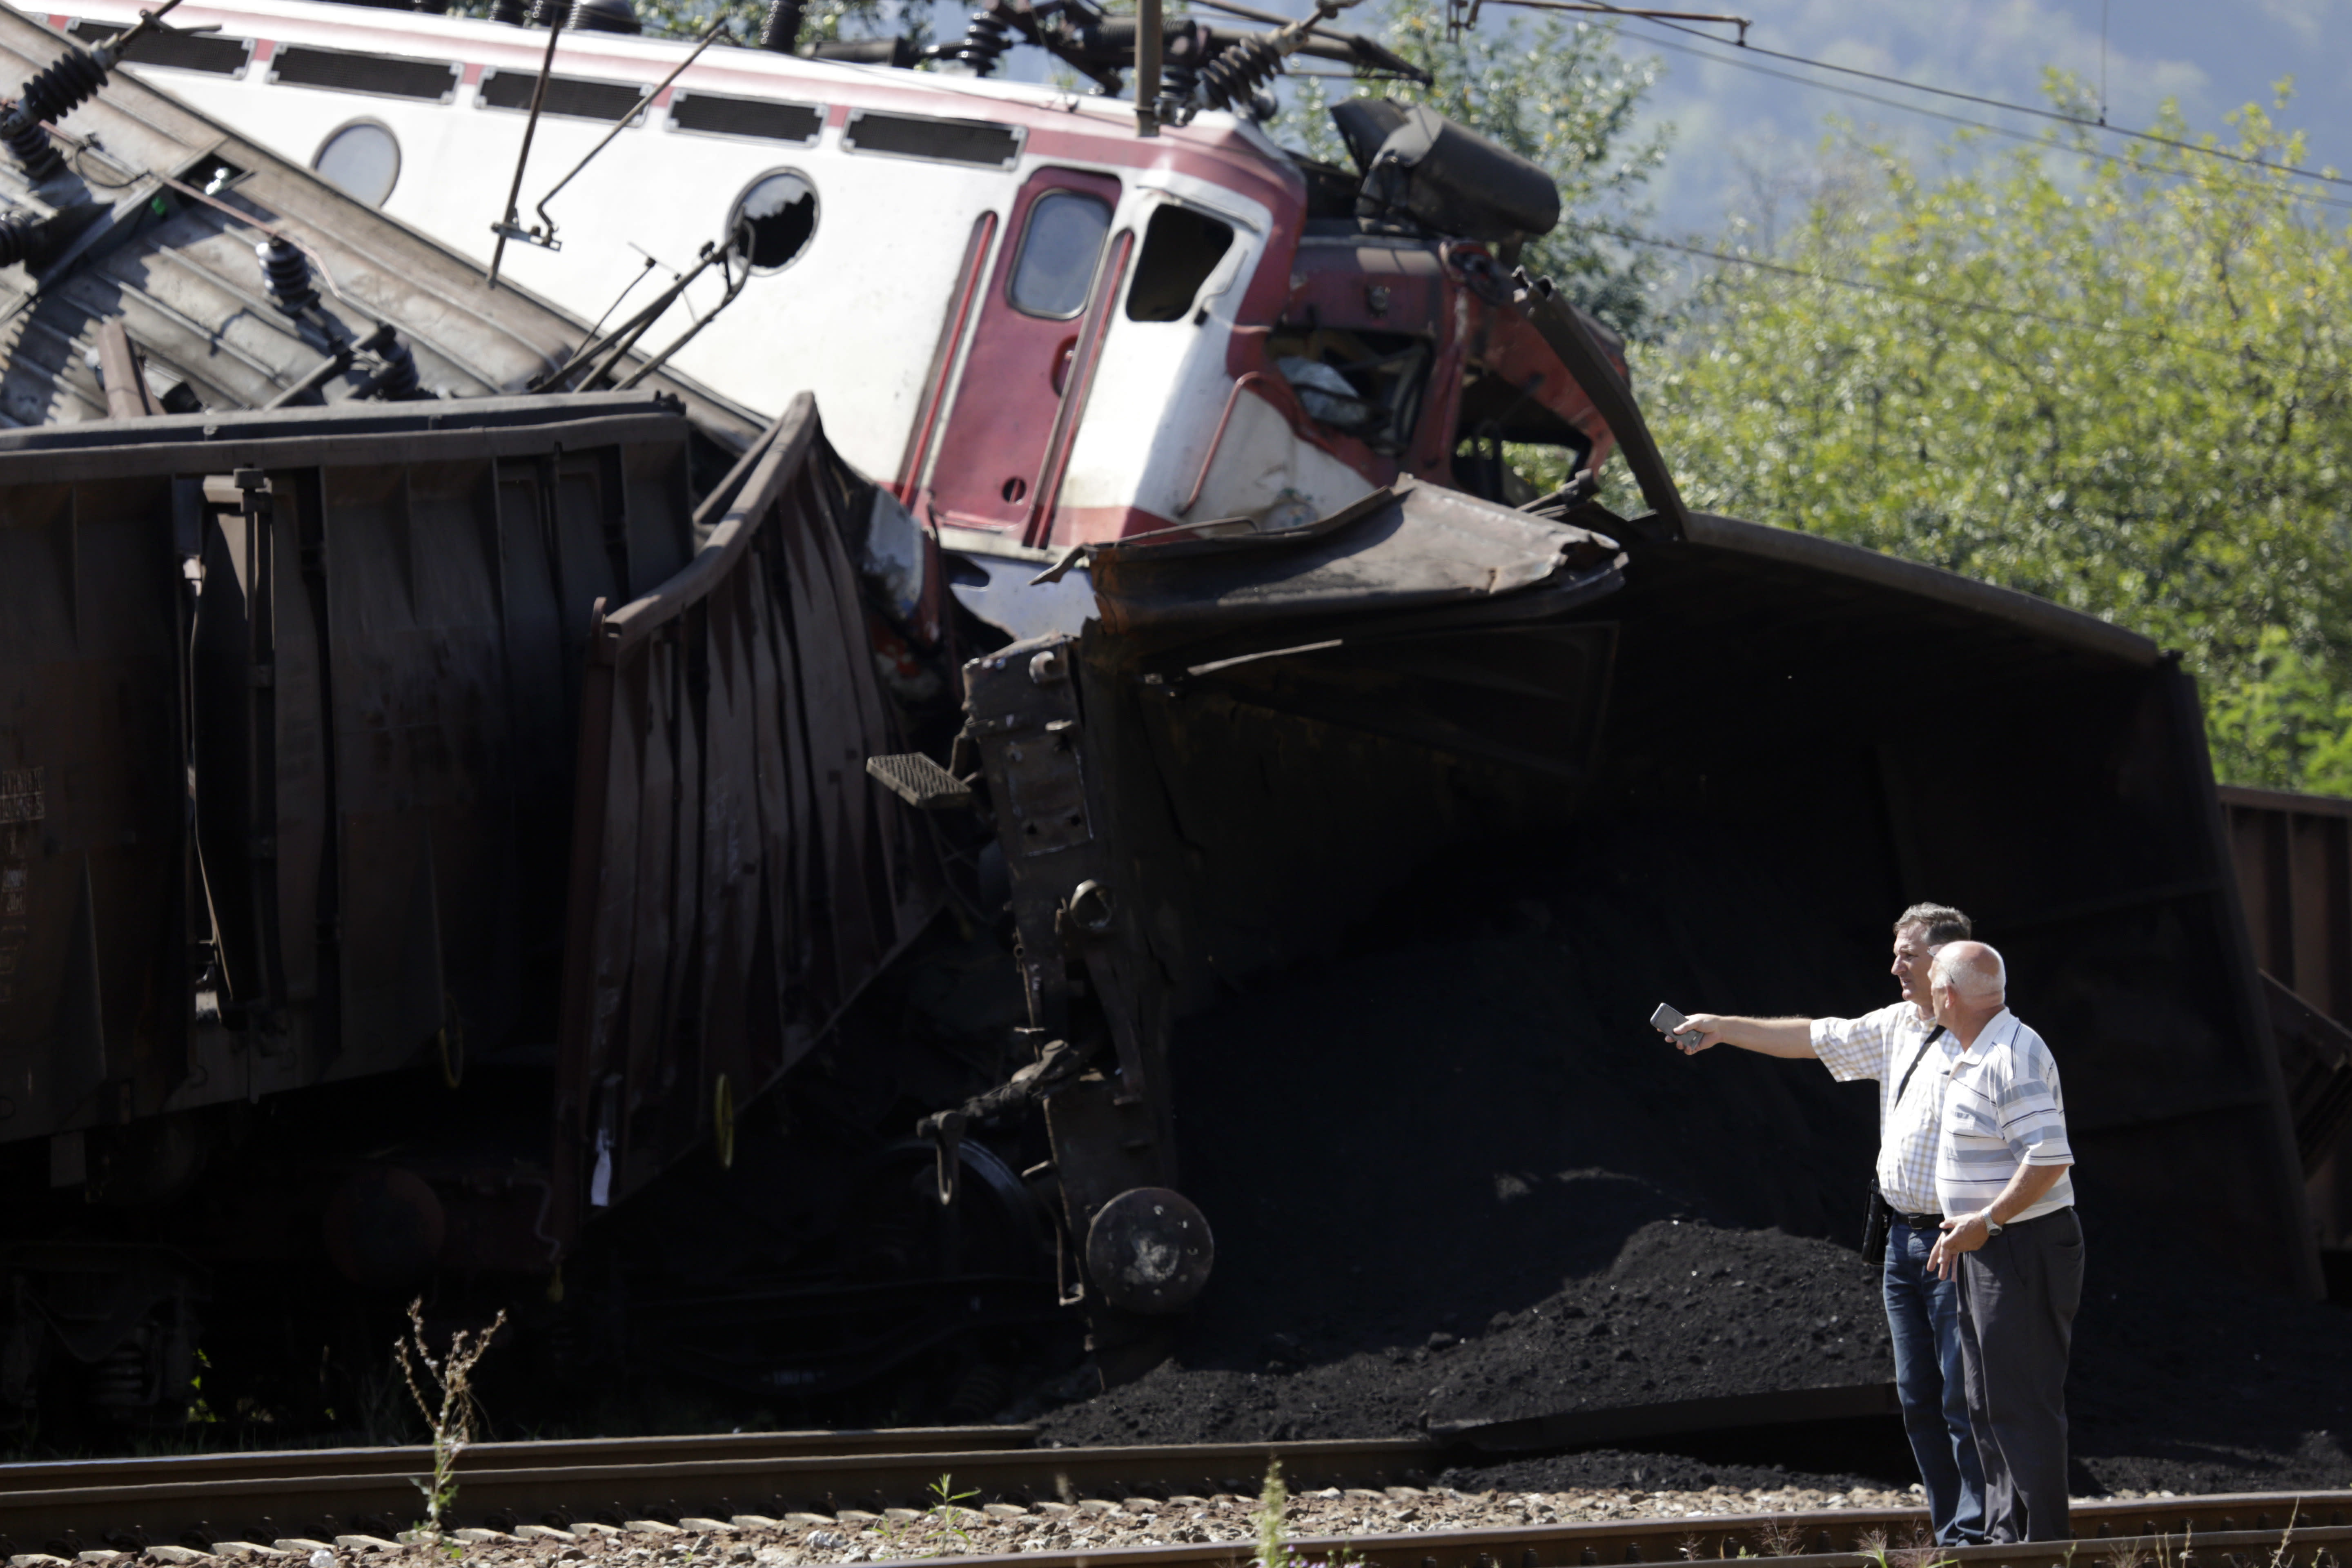 People study the scene where two cargo trains collided at the train station in Jablanica, about 80 kms south of Sarajevo, Bosnia, Thursday, Aug. 23, 2018. Police say two people have been killed and one was seriously injured in a head-on freight train collision in southern Bosnia, early Thursday. (AP Photo/Amel Emric)